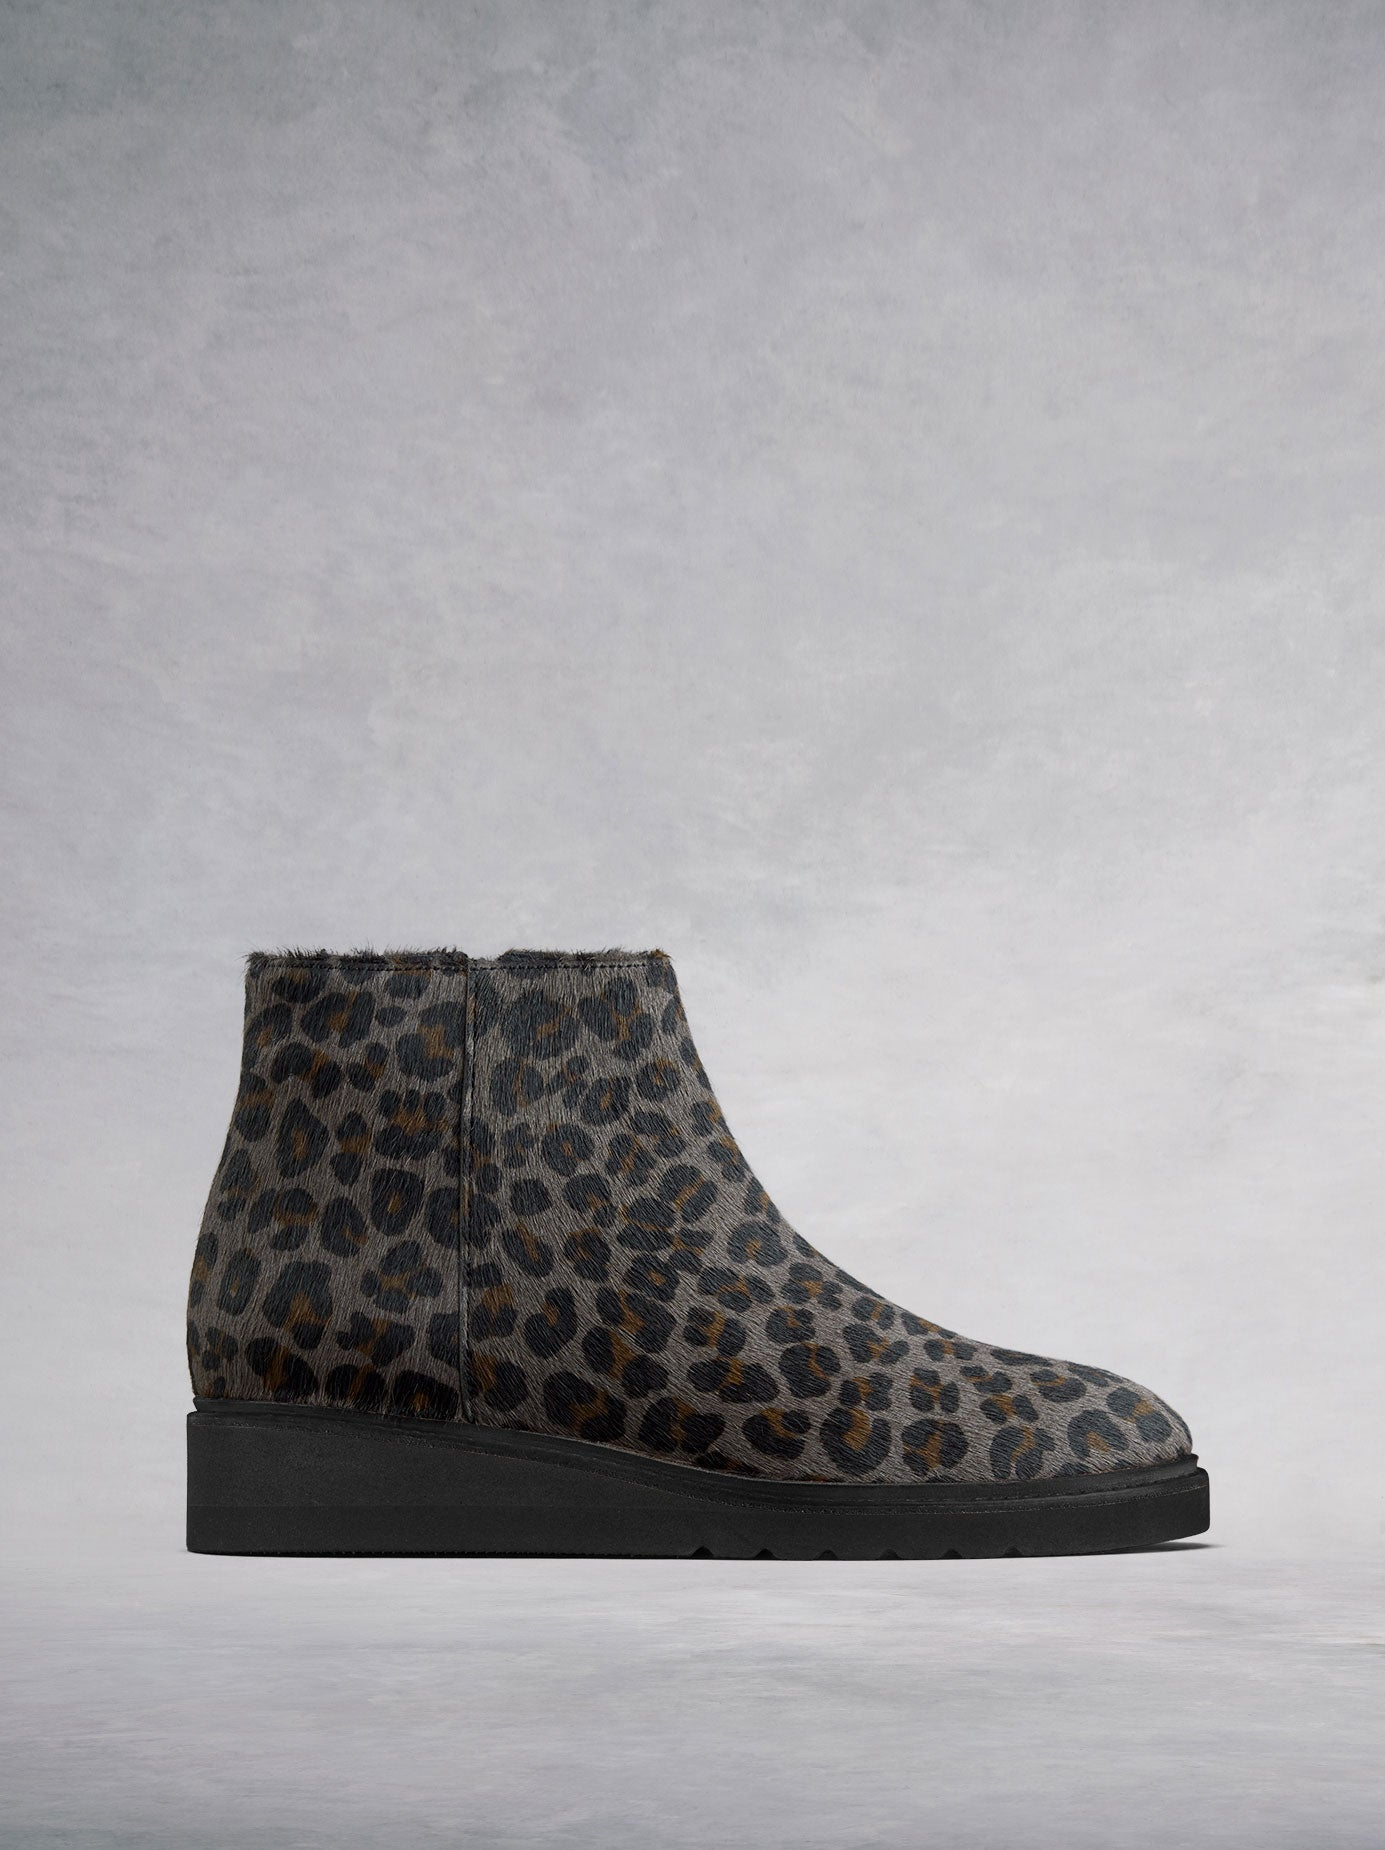 The Kielder, flat ankle boots in on-trend grey leopard hair leather.